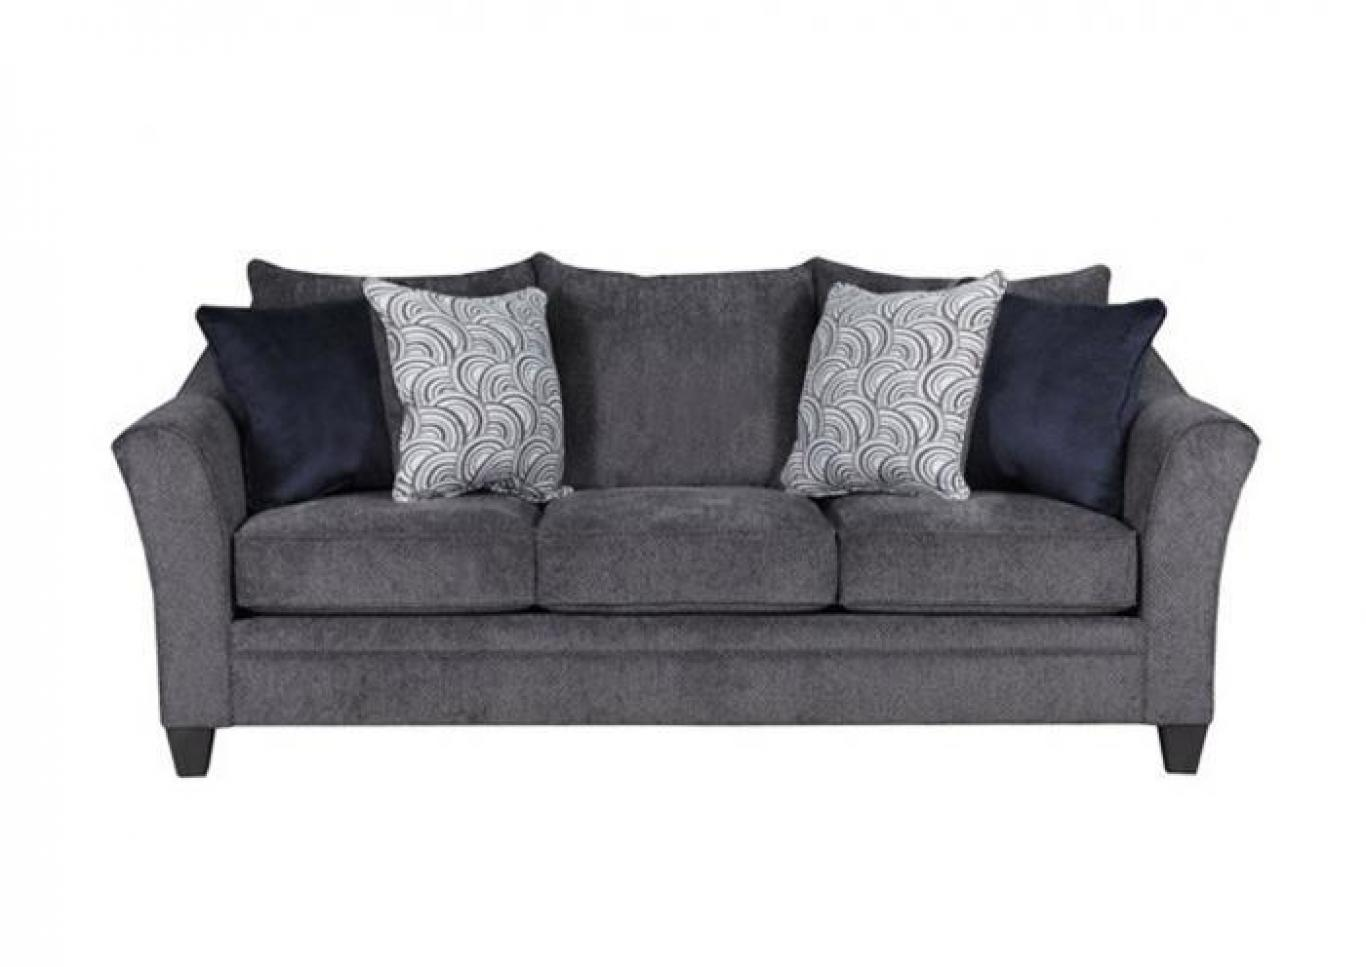 Reagan Sofa and Love Seat - Albany Pewter,Instore